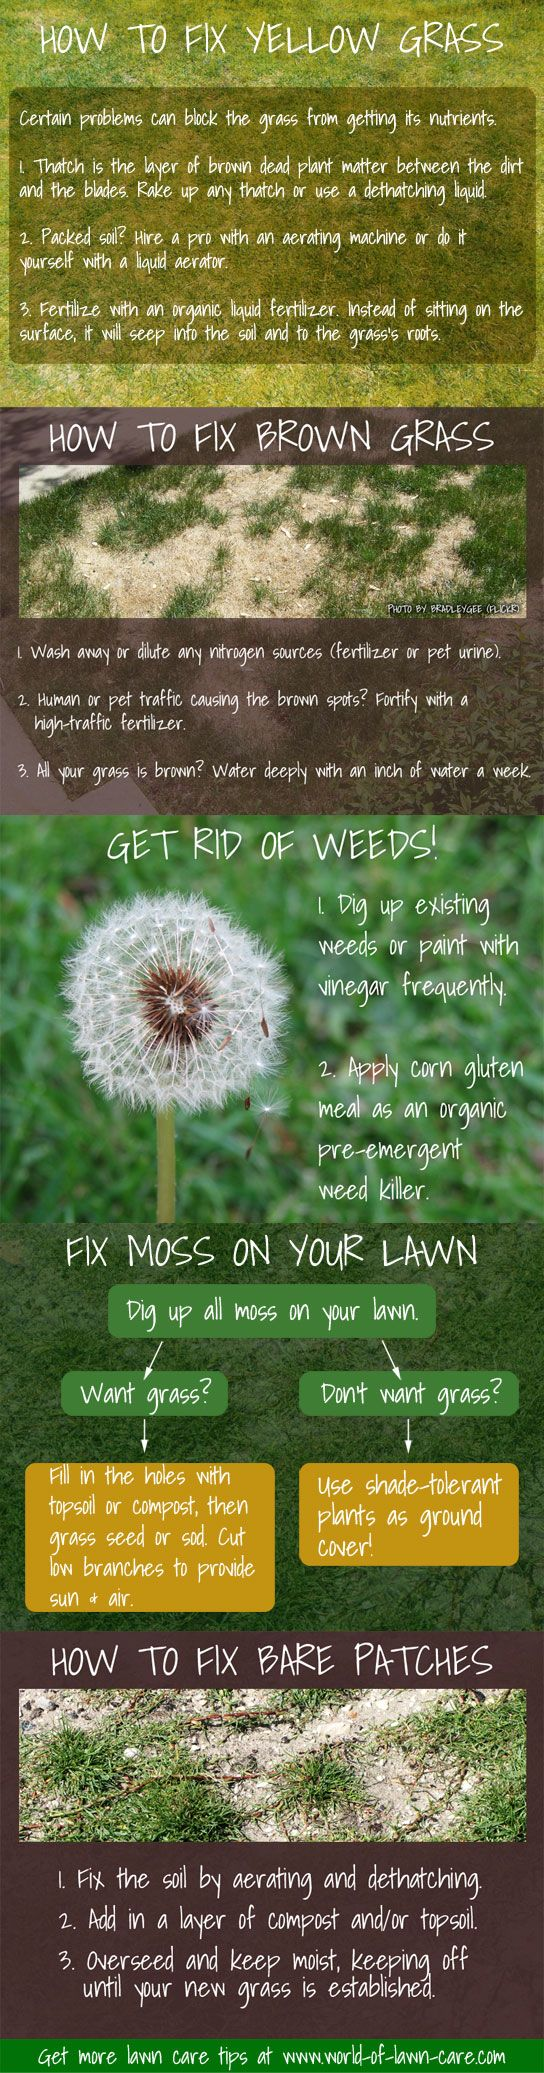 lawn repair fixes for yellowing grass bare brown patches weeds